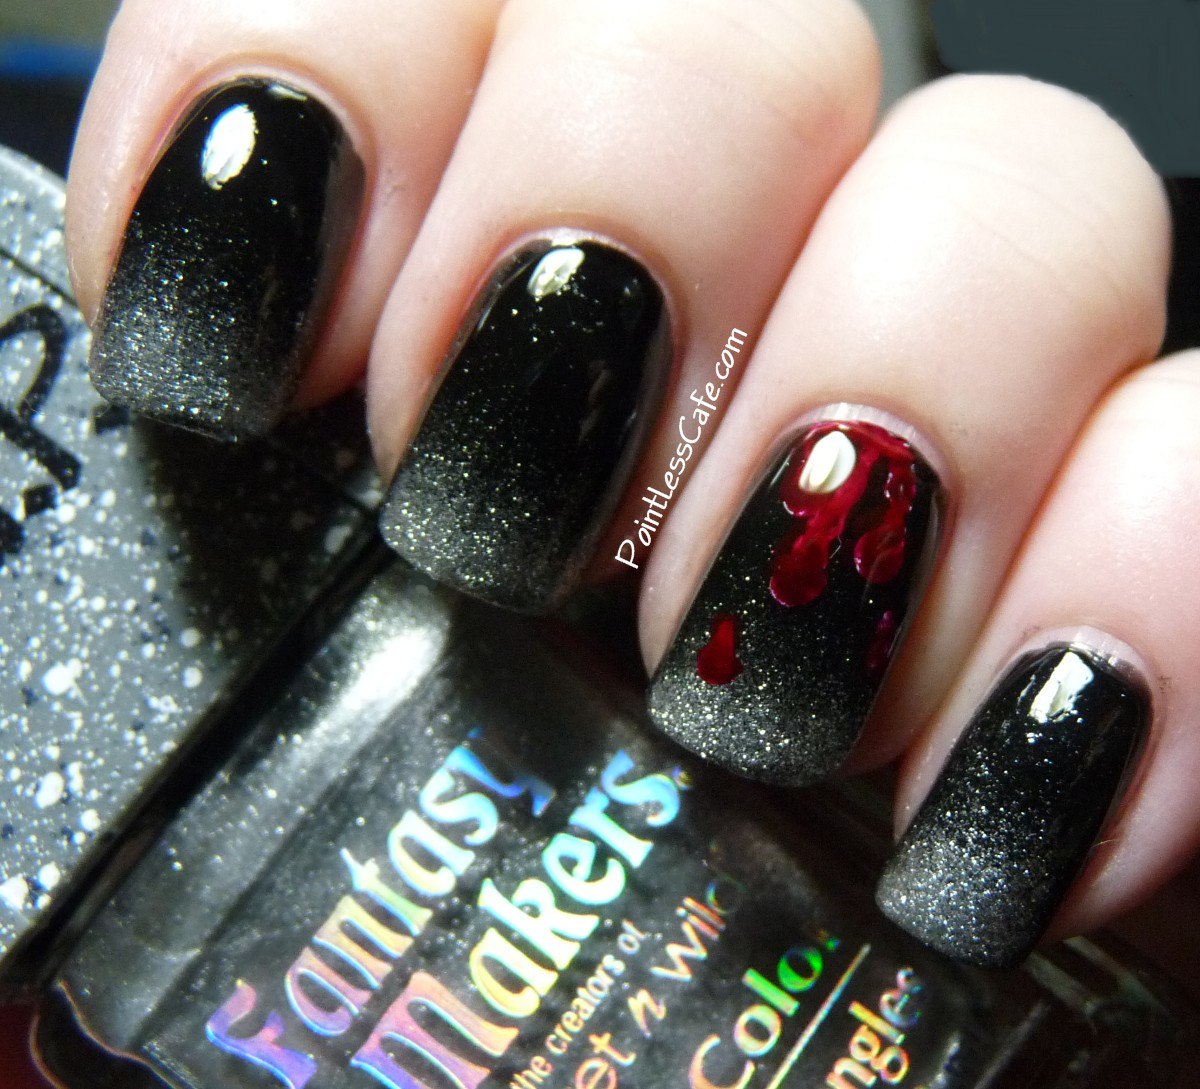 Nail Colors Halloween: Halloween Nail Art - Zombie Nails!